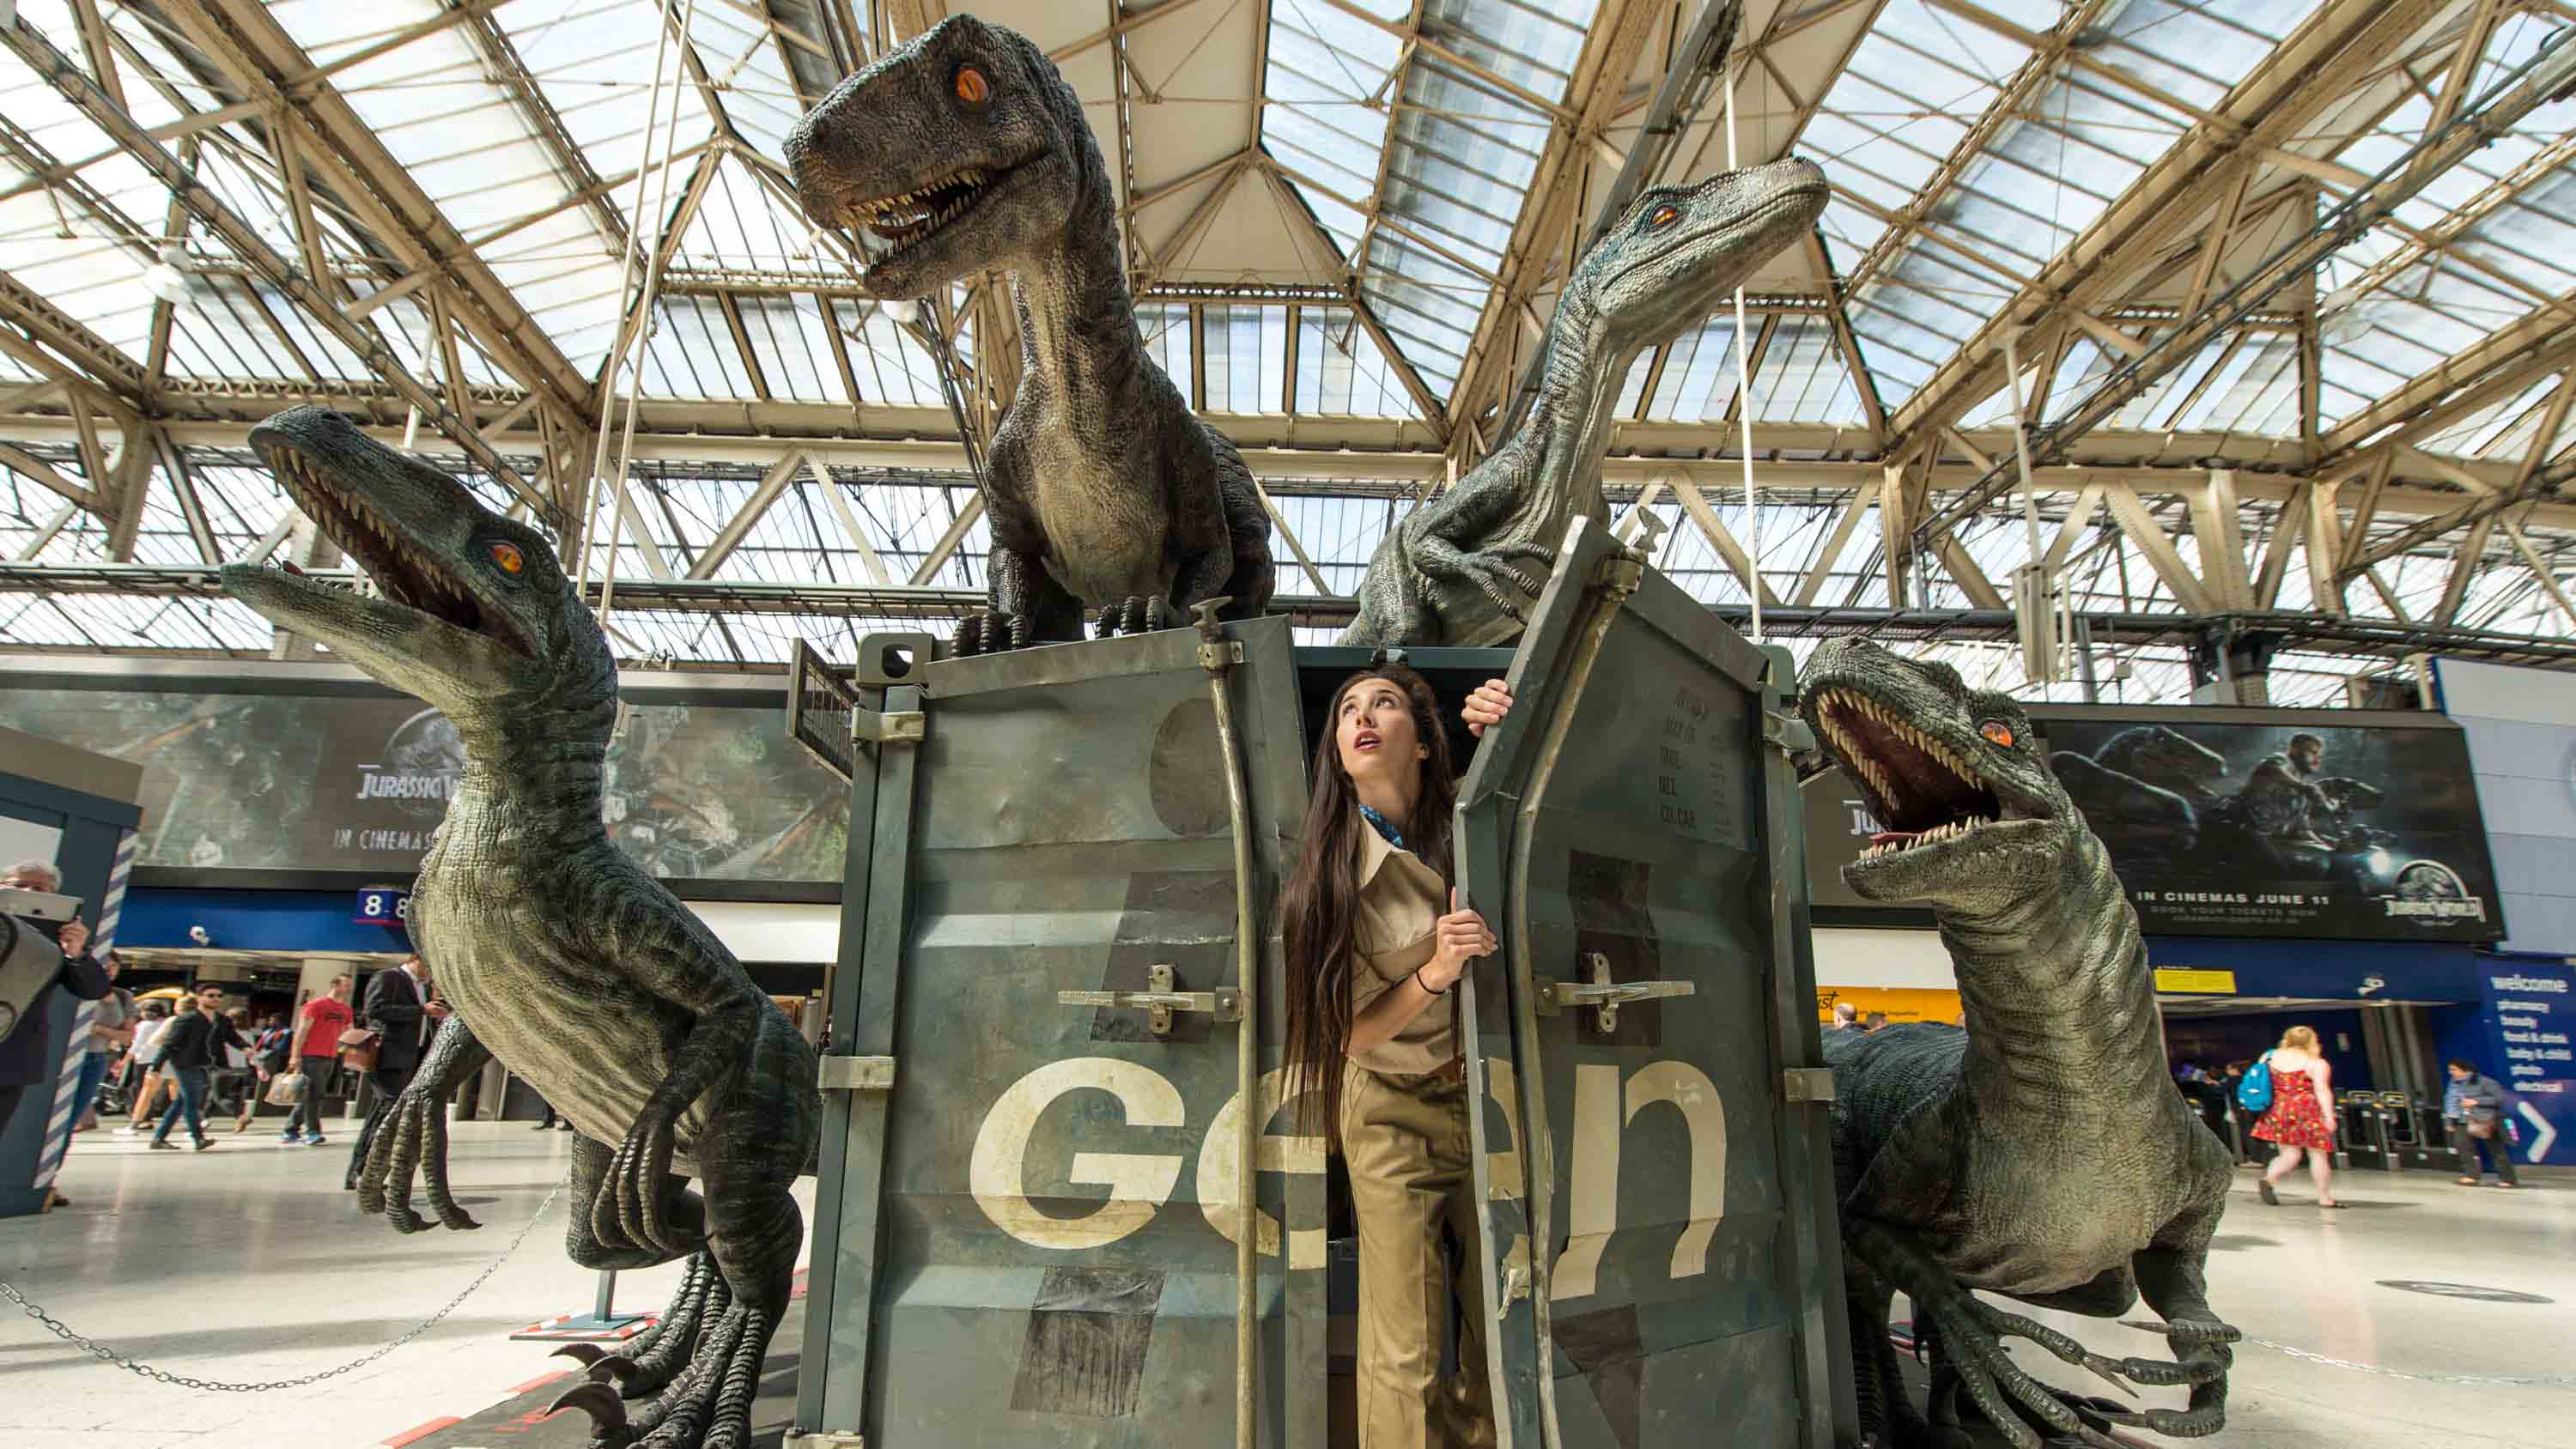 A dinosaur attendant emerges from a shipping container surrounded by dinosaurs during the 'Jurassic World'.